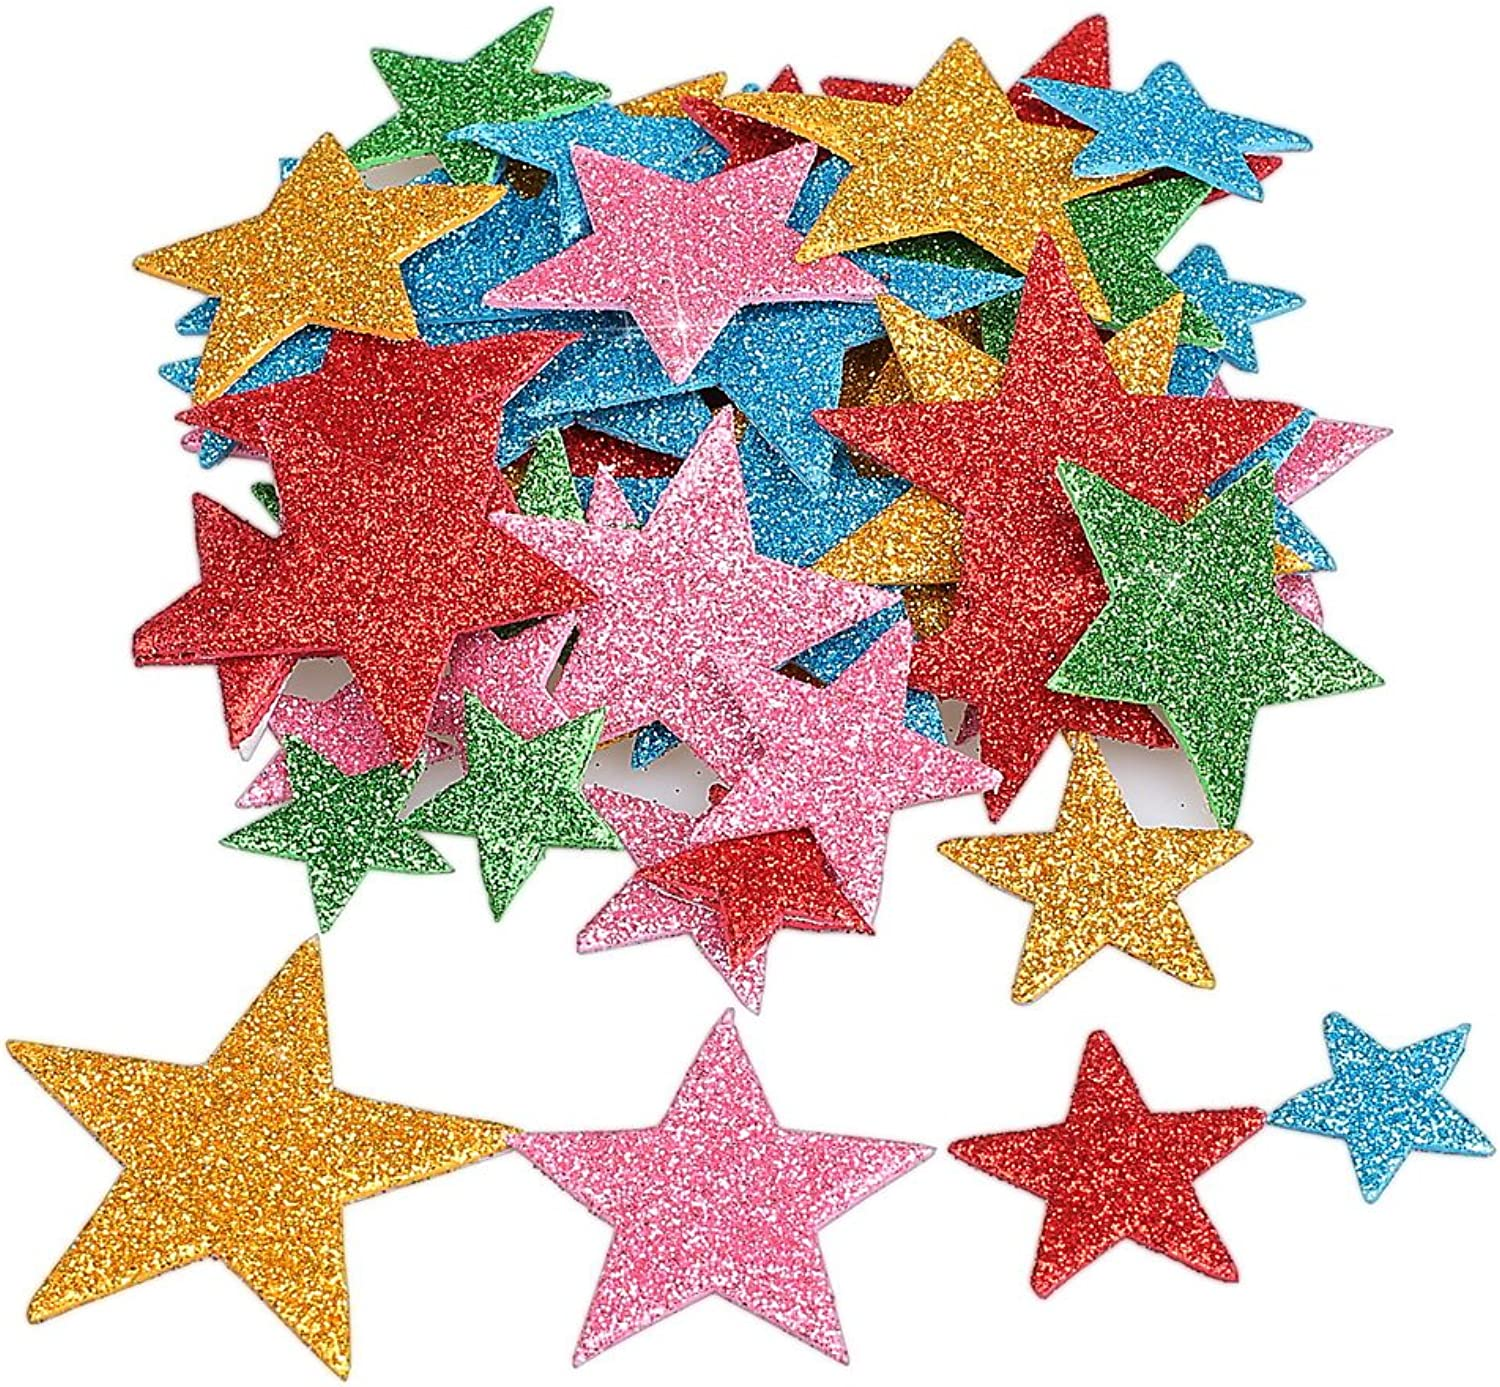 Pengxiaomei 210 Pcs Foam Glitter Stickers, Different Size colorful Self Adhesive Star Shaped Wall Stickers, Stickers Decal Kid's Arts Craft Supplies